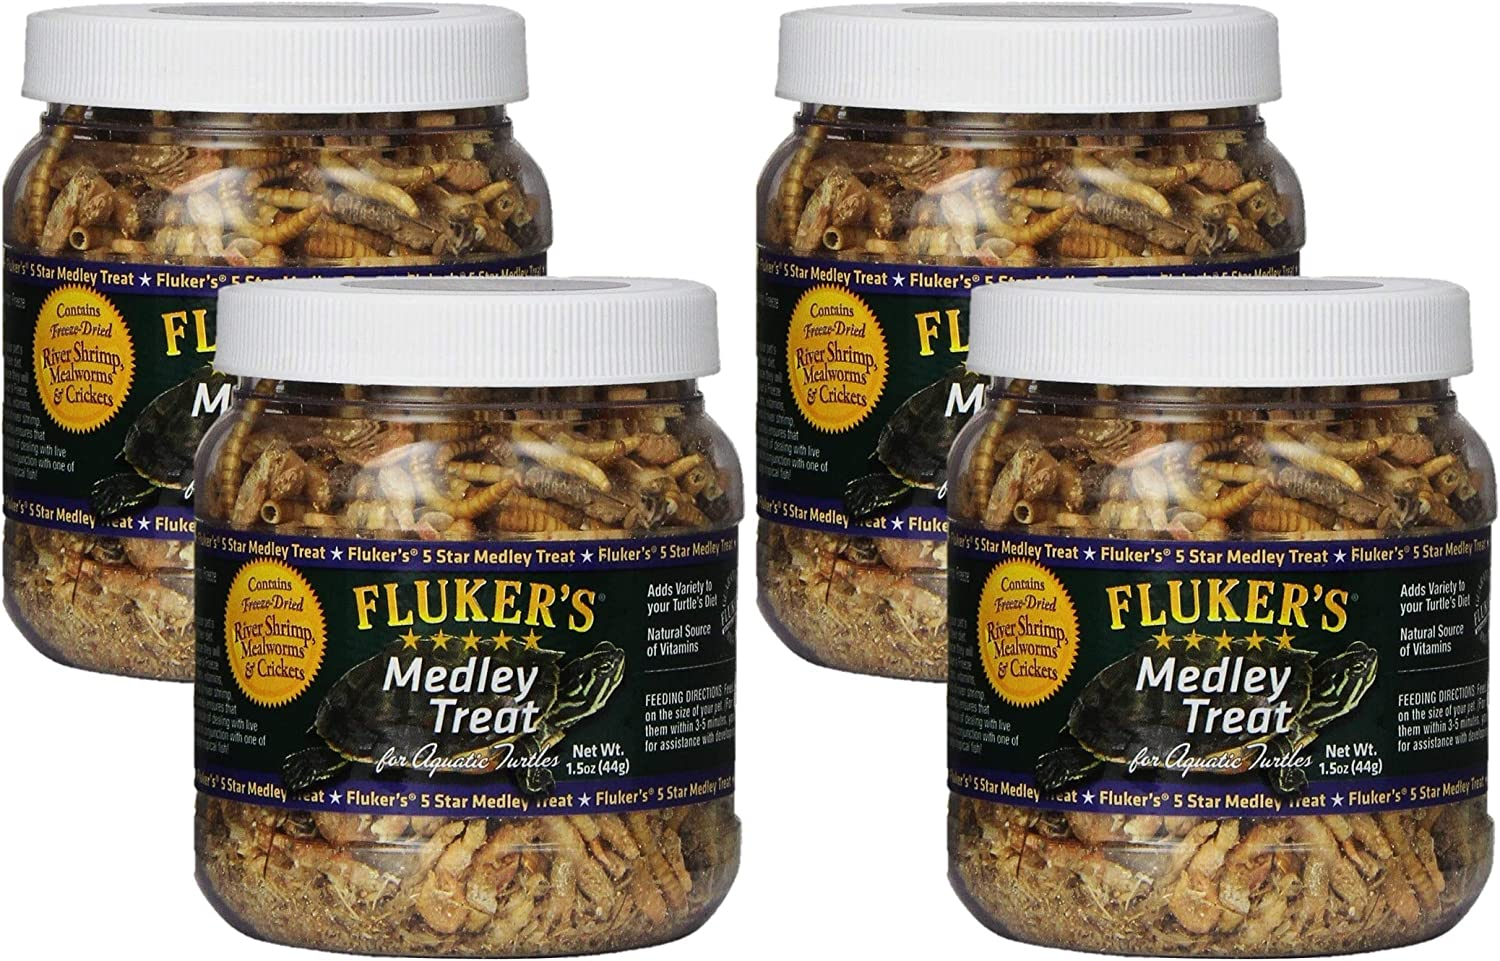 Fluker Labs SFK72020 Aquatic Turtle Medley Treat Food, 1.5-Ounce (Pack of 4)